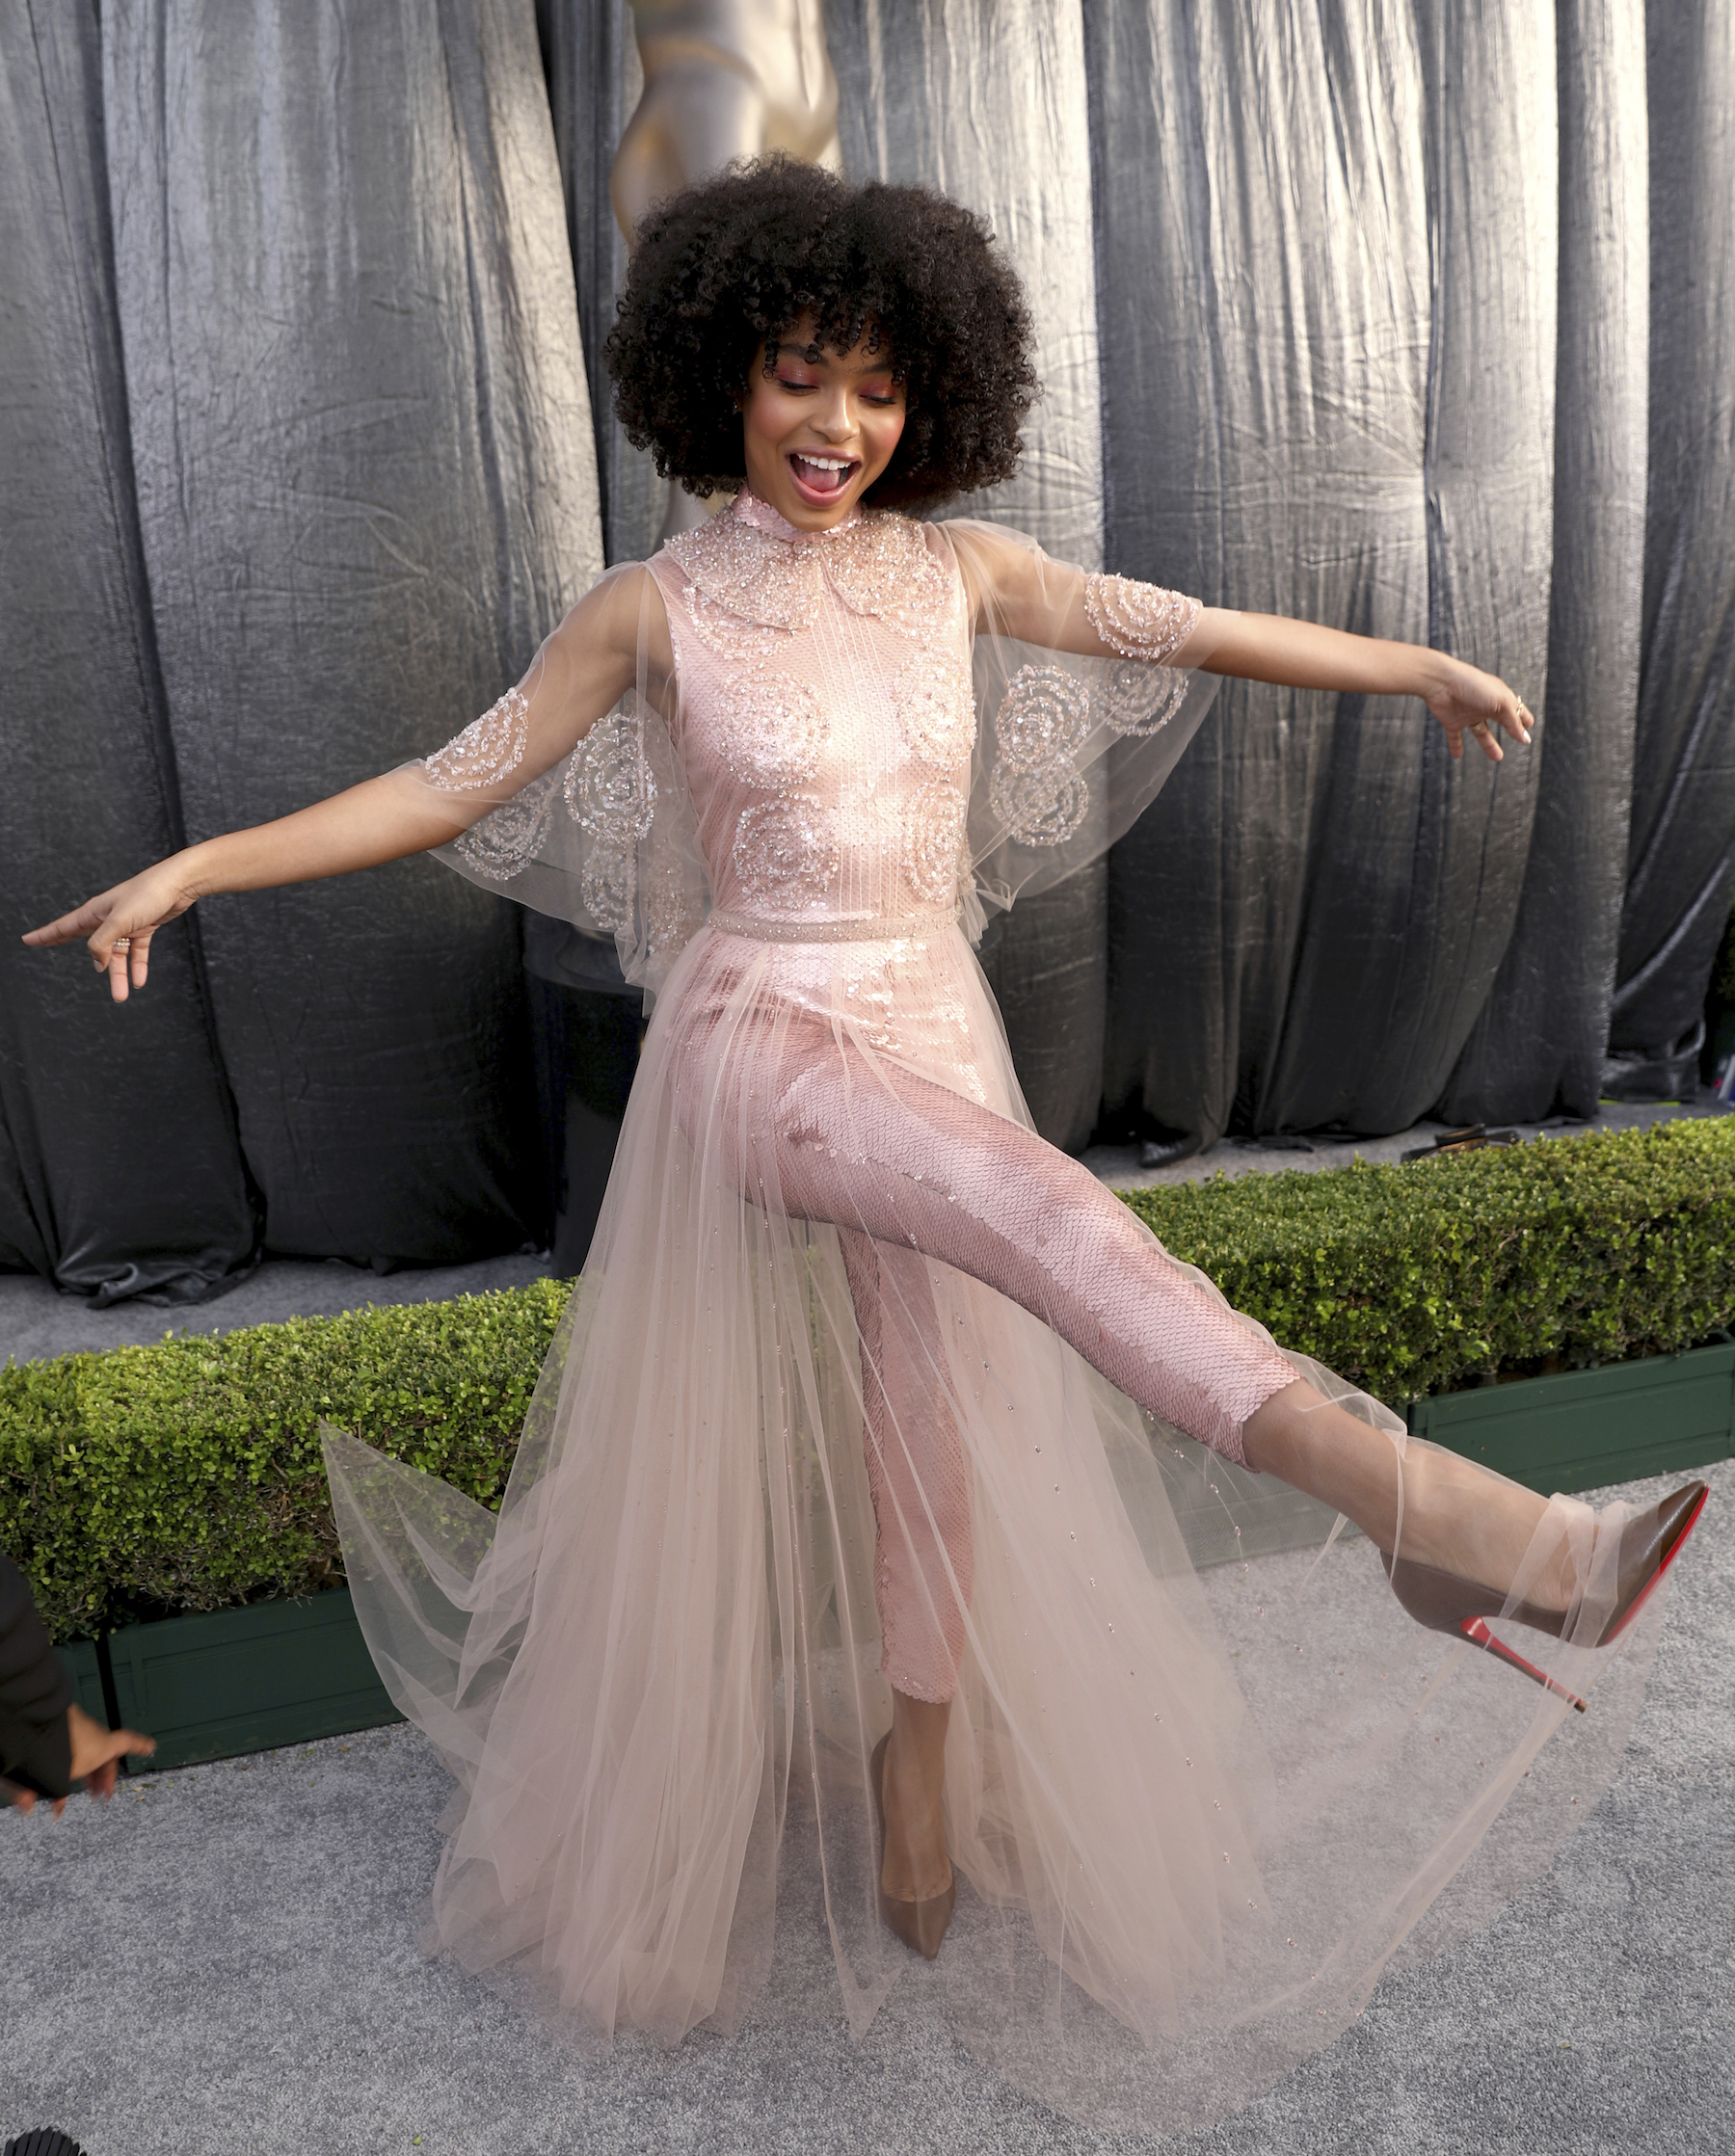 <div class='meta'><div class='origin-logo' data-origin='AP'></div><span class='caption-text' data-credit='Matt Sayles/Invision/AP'>Yara Shahidi arrives at the 25th annual Screen Actors Guild Awards at the Shrine Auditorium & Expo Hall on Sunday, Jan. 27, 2019, in Los Angeles.</span></div>